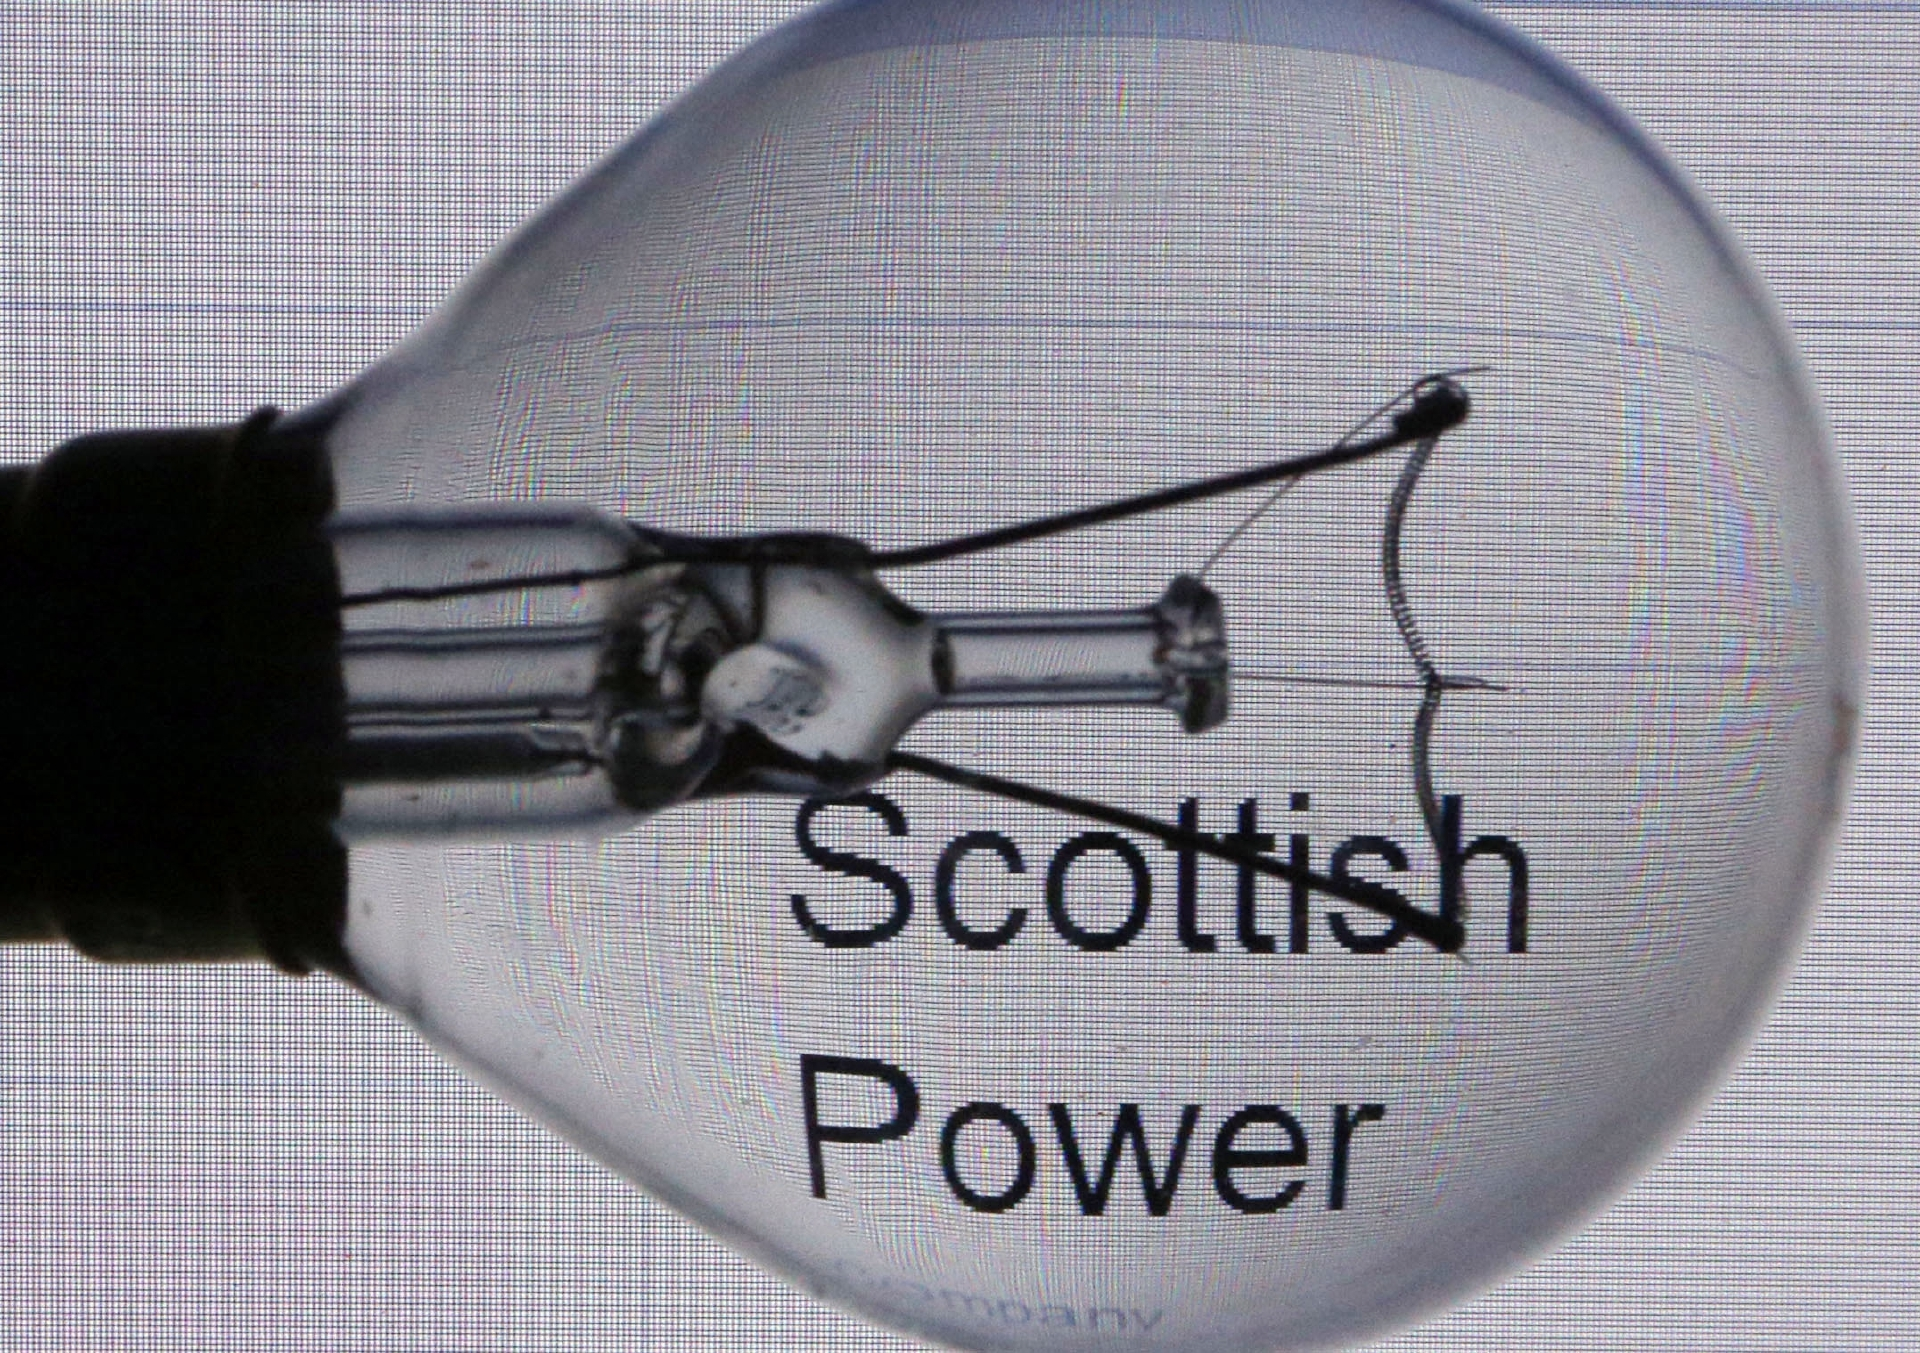 ScottishPower is carrying out a major roll-out of smart meters.